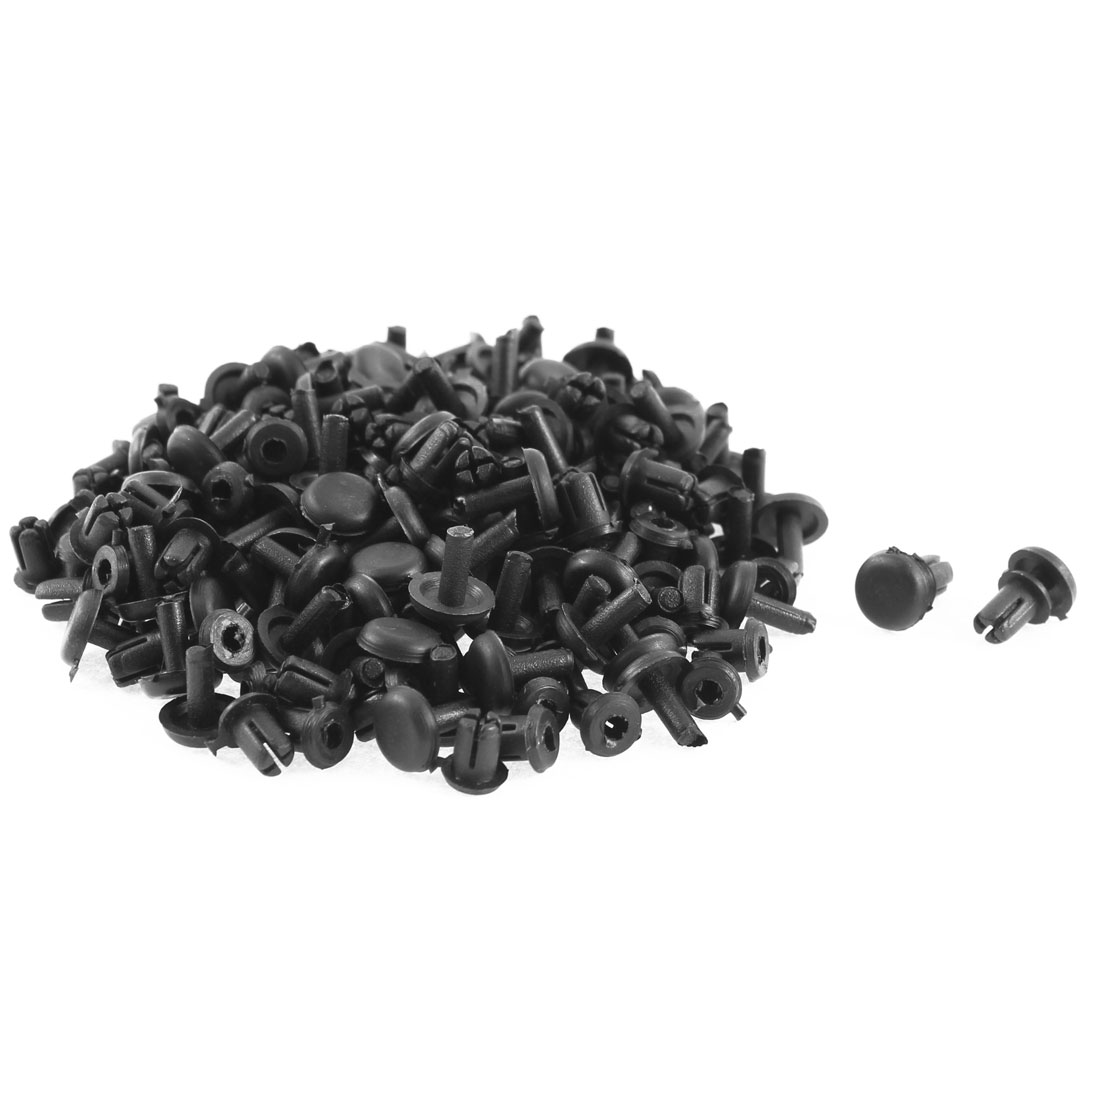 100Pcs 5mm Hole Black Plastic Bumper Lining Retainer Fastener Rivet